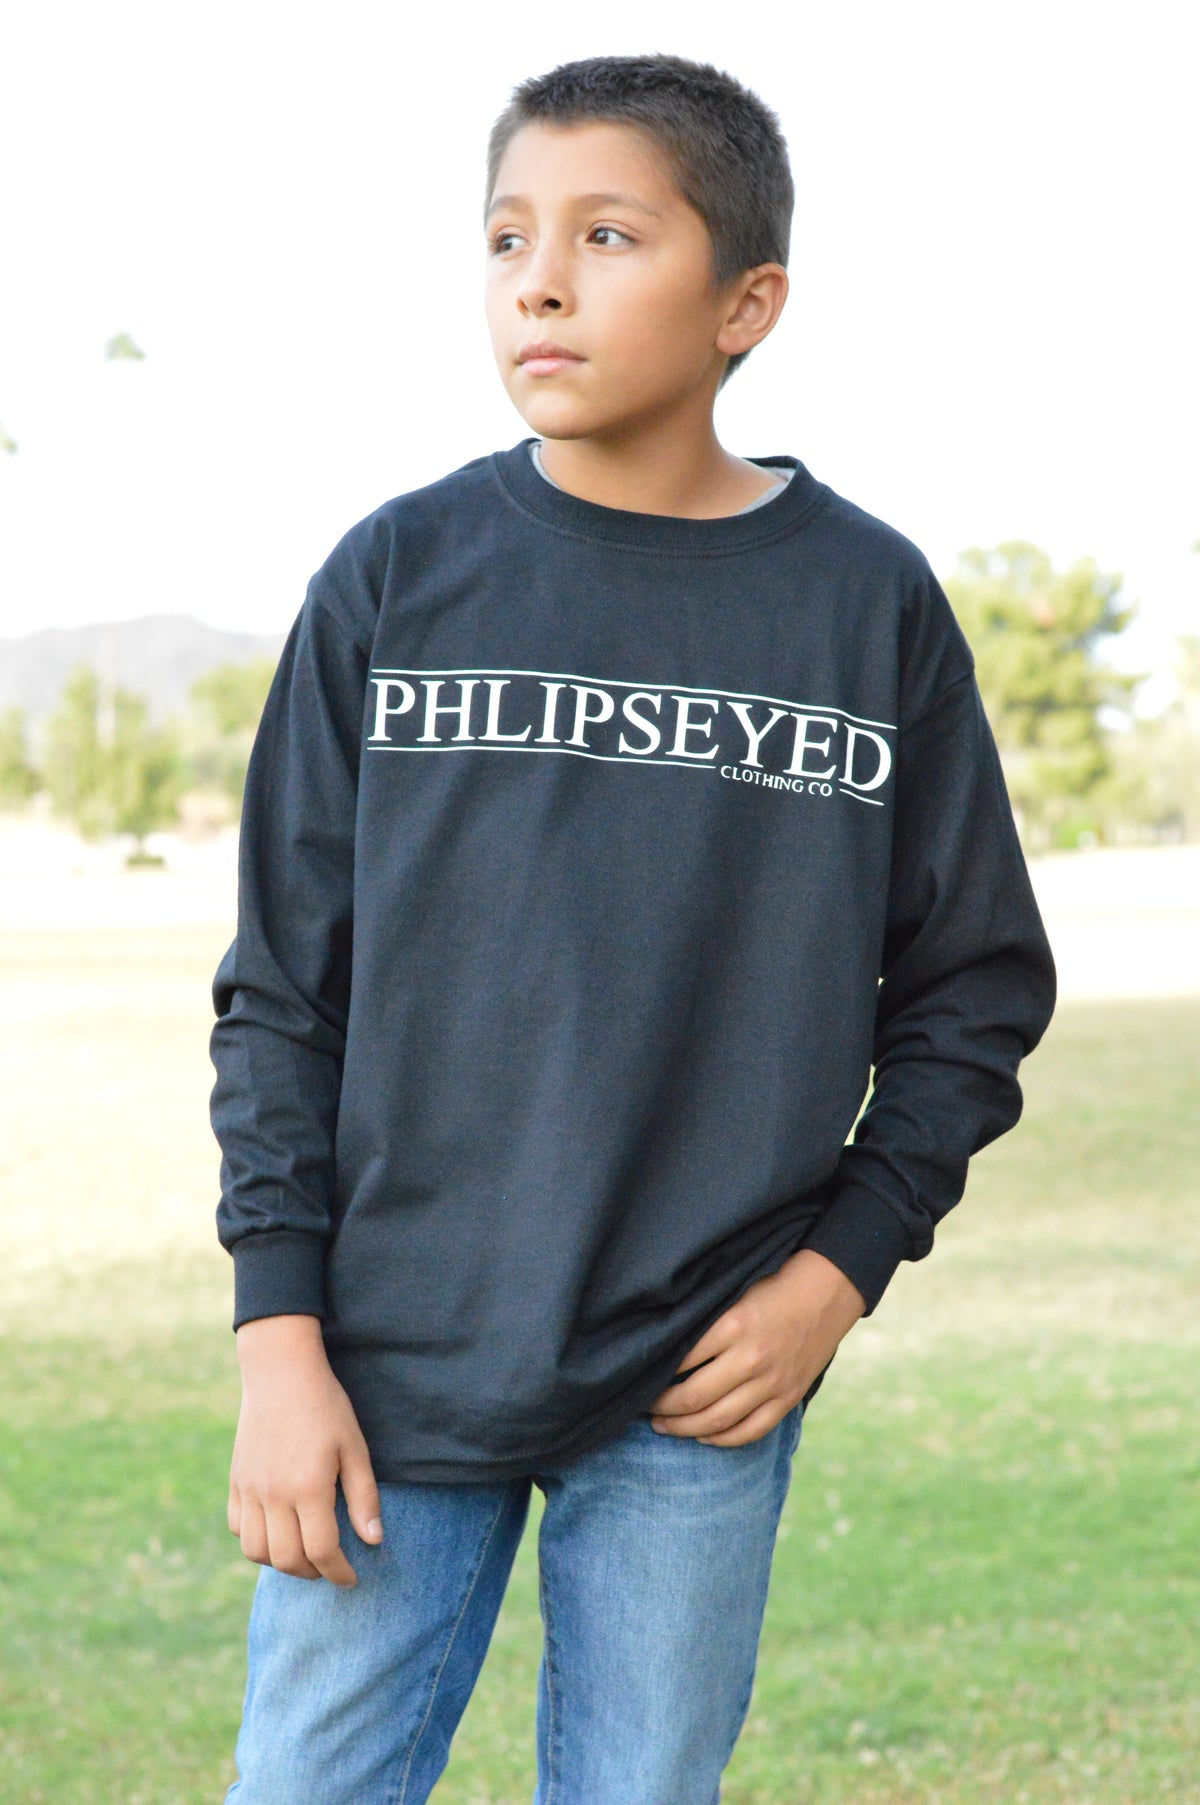 Phlipseyed Classic Youth Long Sleeve Tee Black/White